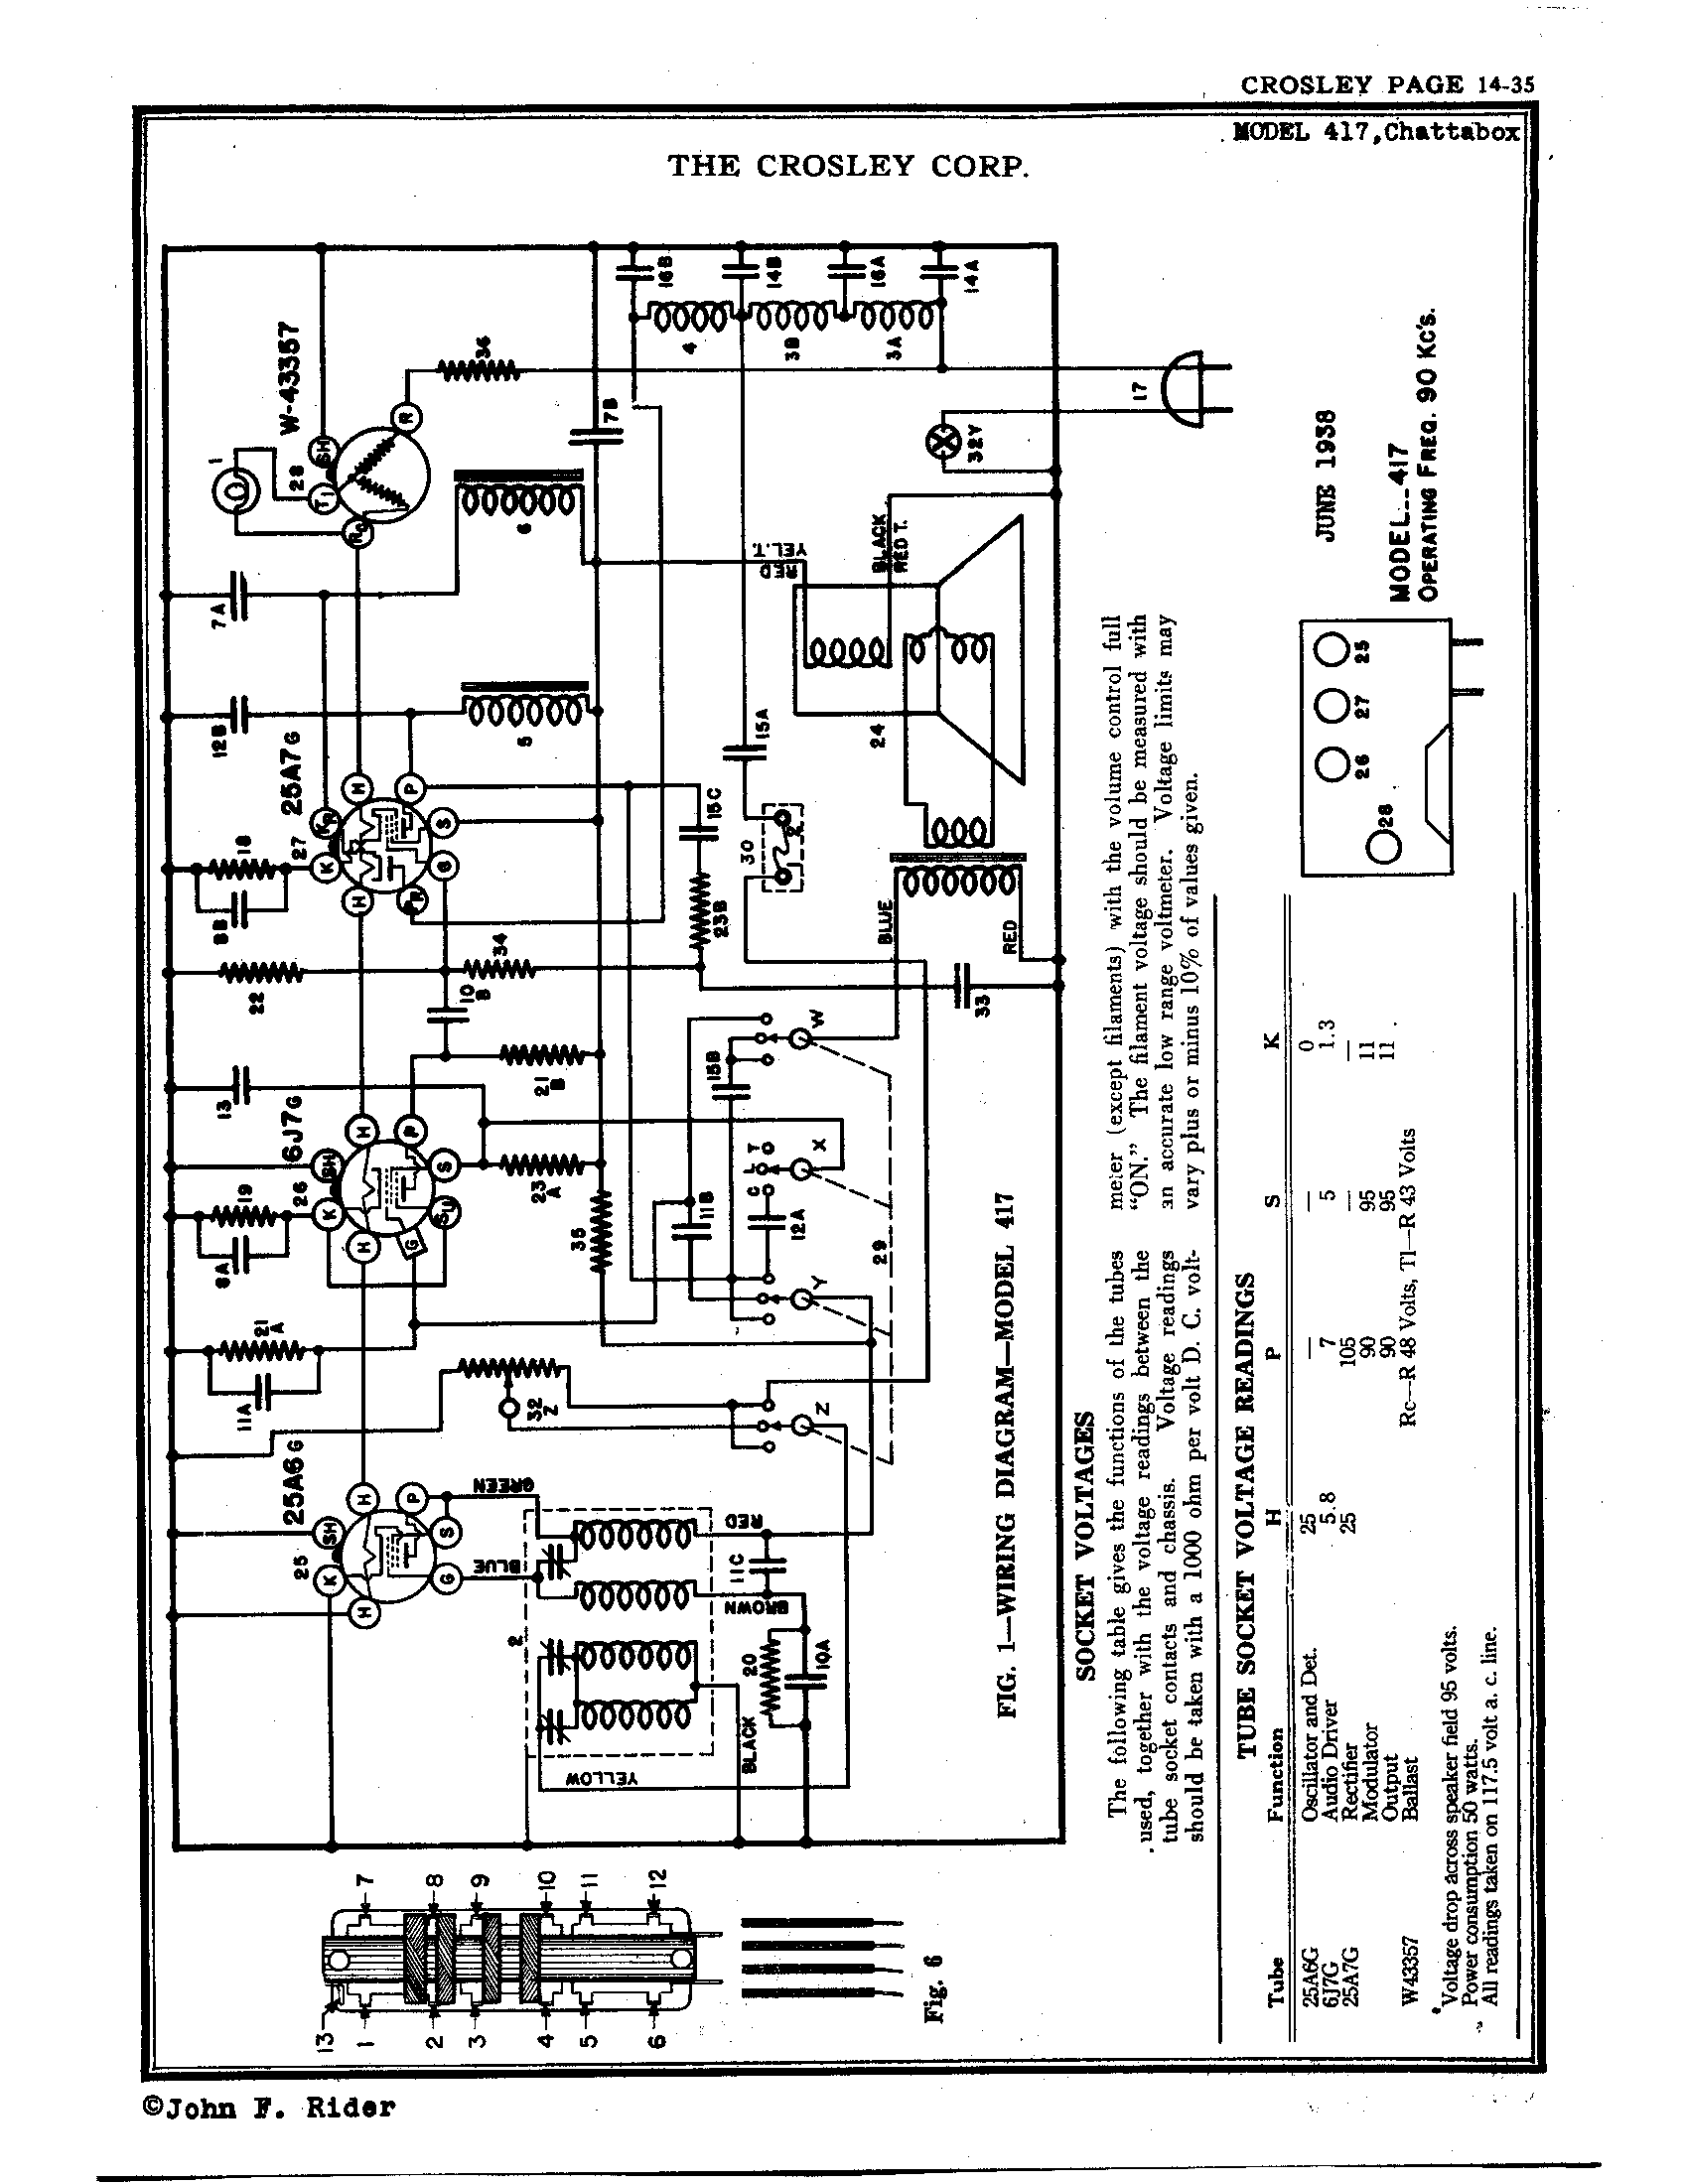 [DIAGRAM_34OR]  Crosley Corp. Chatterbox | Antique Electronic Supply | Chatterbox Wiring Diagram |  | Antique Electronic Supply